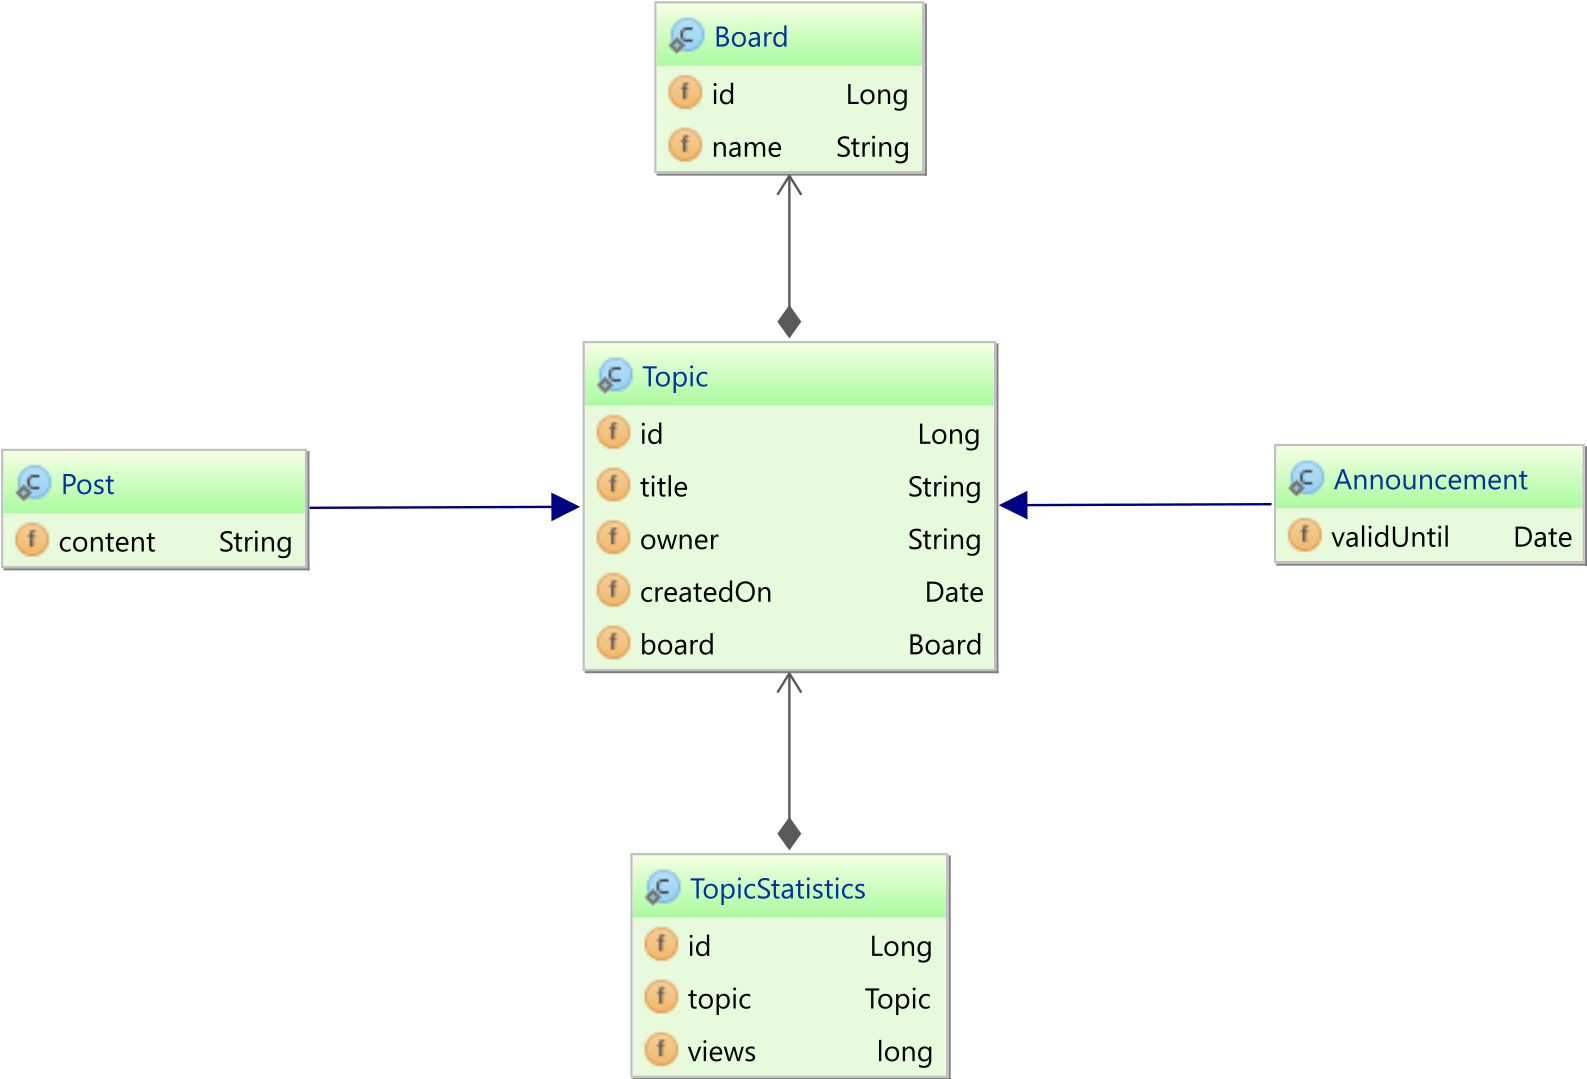 domain class diagram example 2006 toyota land cruiser stereo wiring the best way to map single table inheritance with jpa